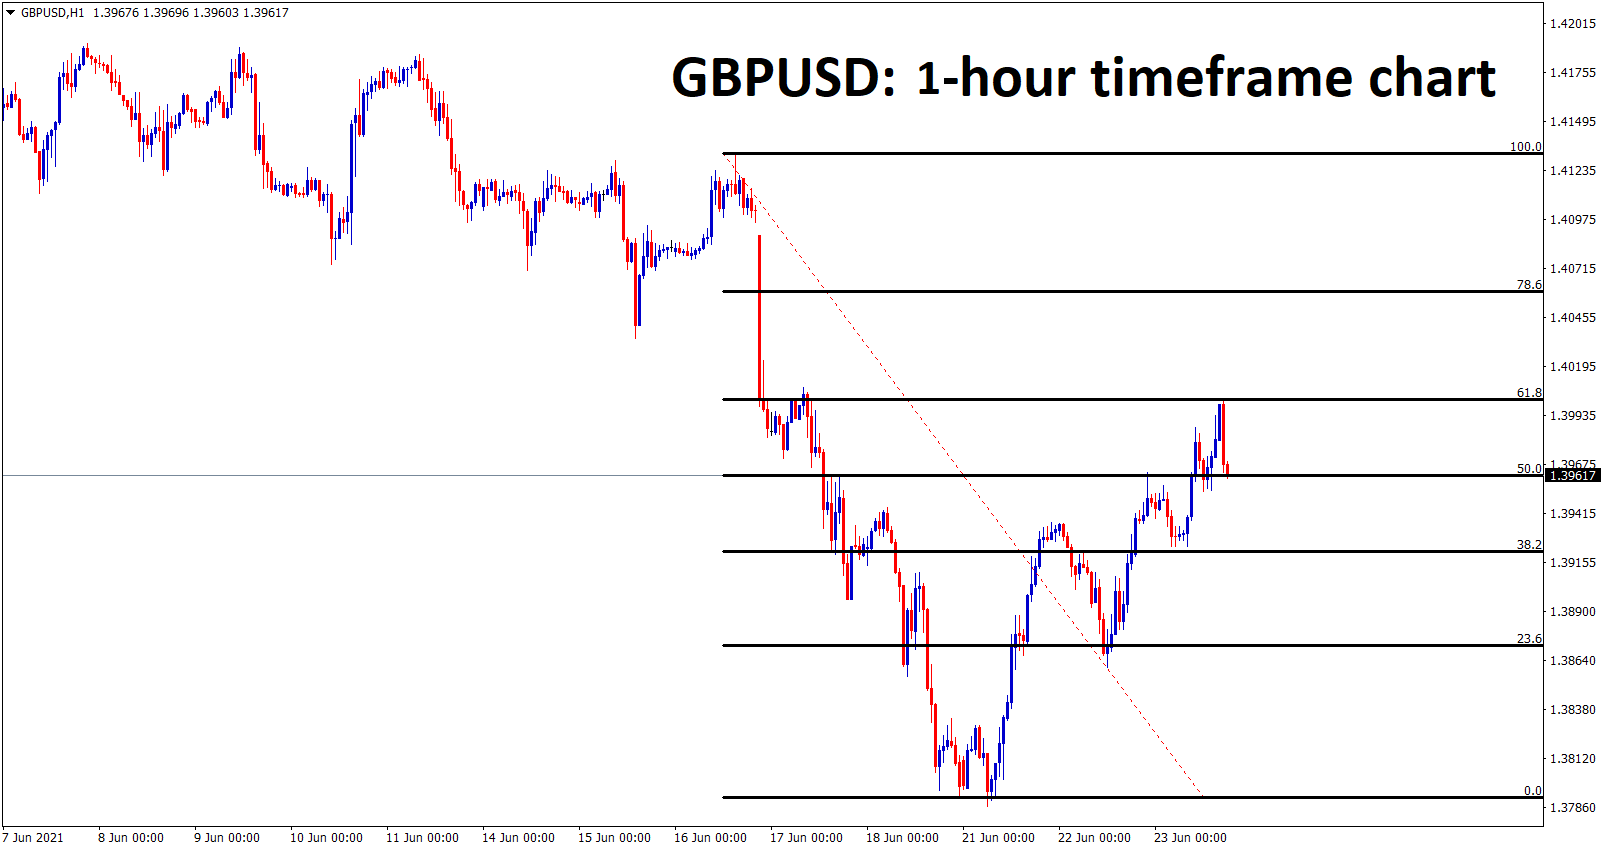 GBPUSD made a 61 correction from the last high